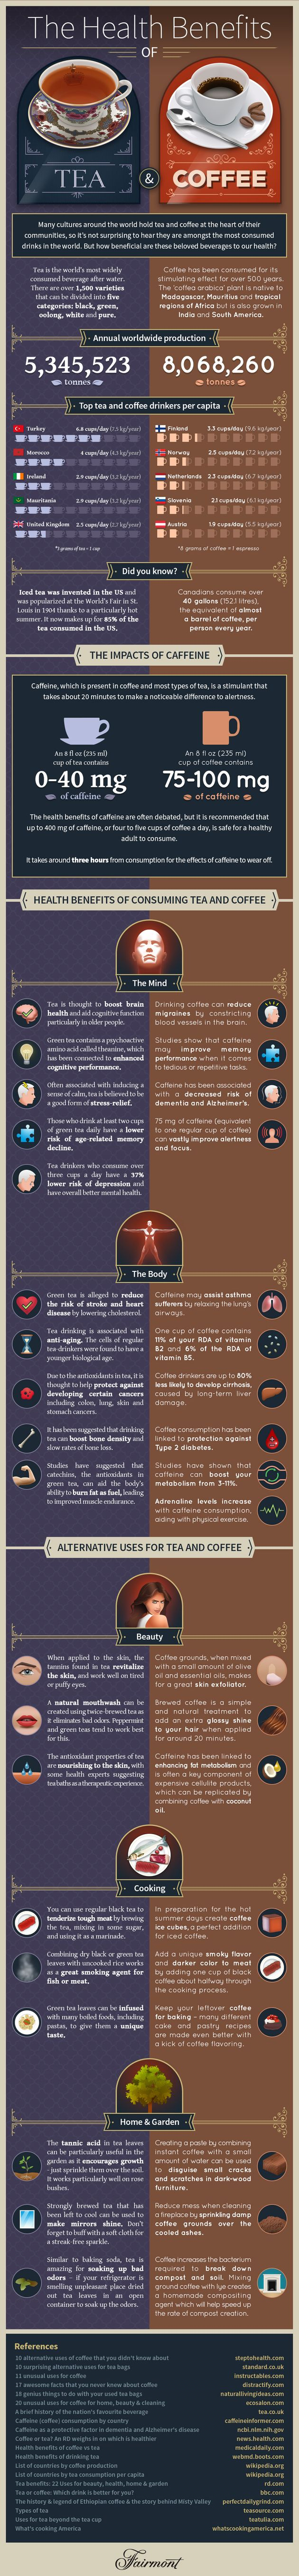 A Look At The Health Benefits Of Both Tea And